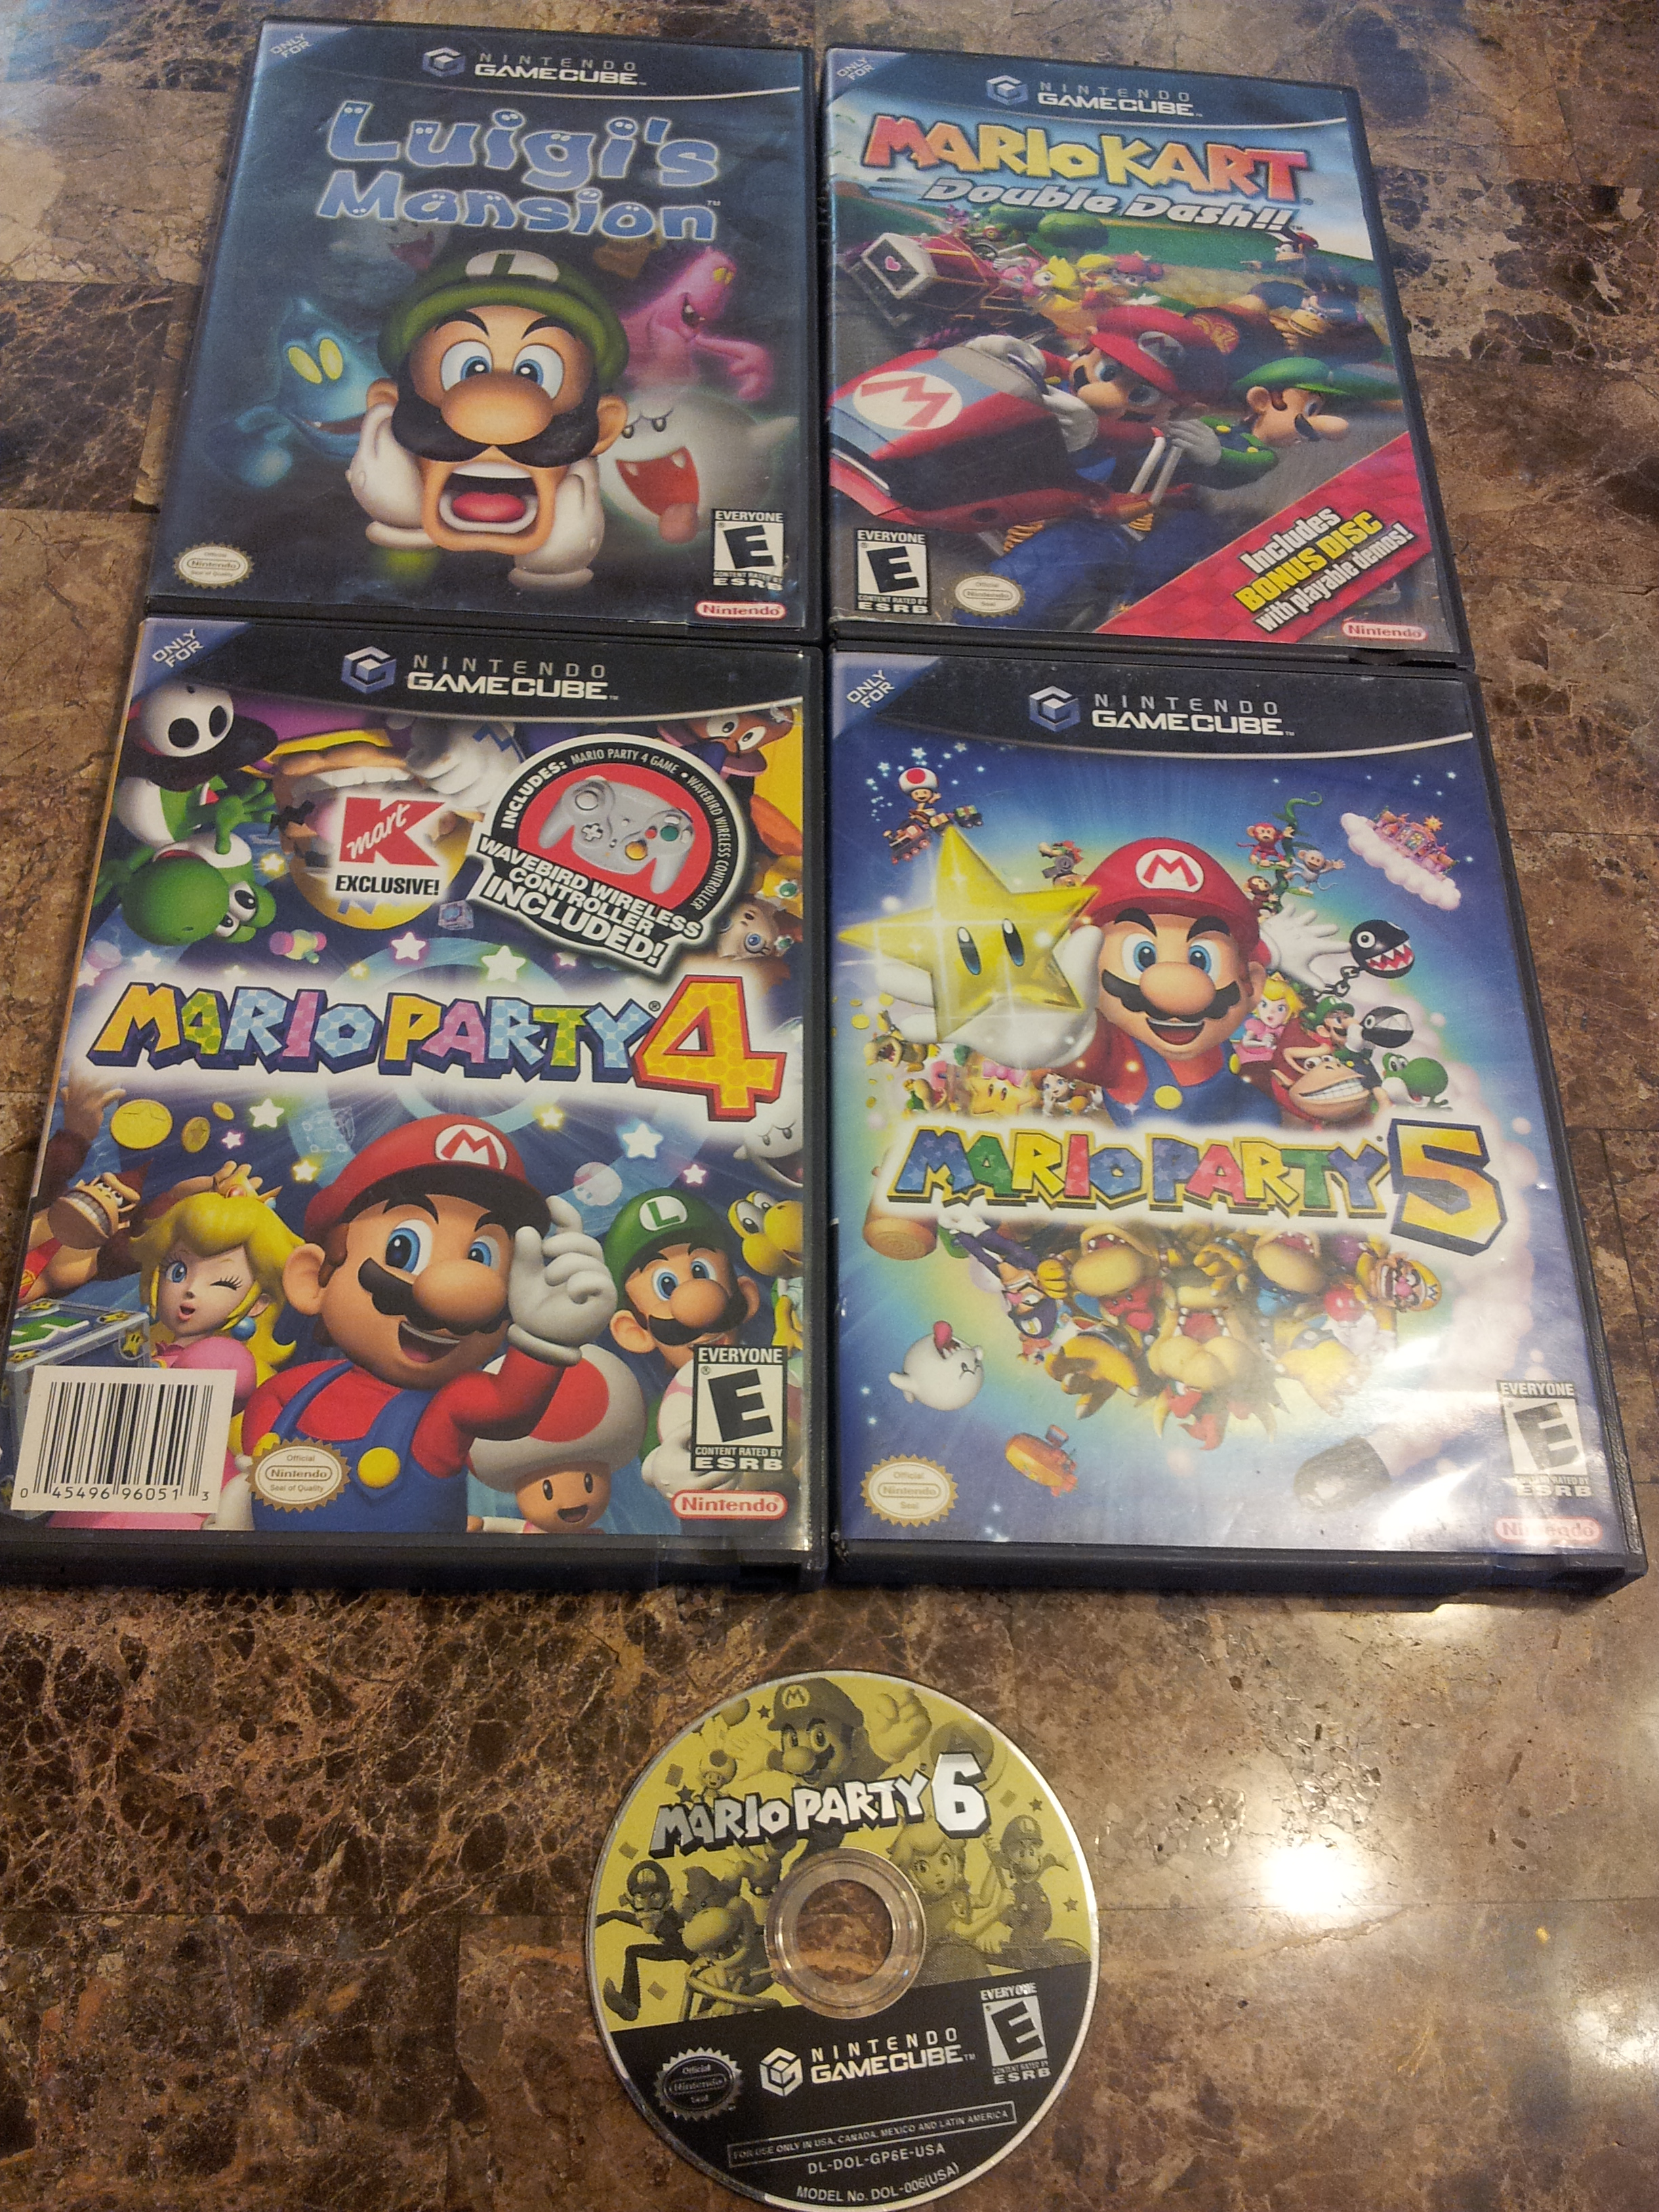 Mario Gamecube Games! - Buy, Sell, and Trade - AtariAge Forums